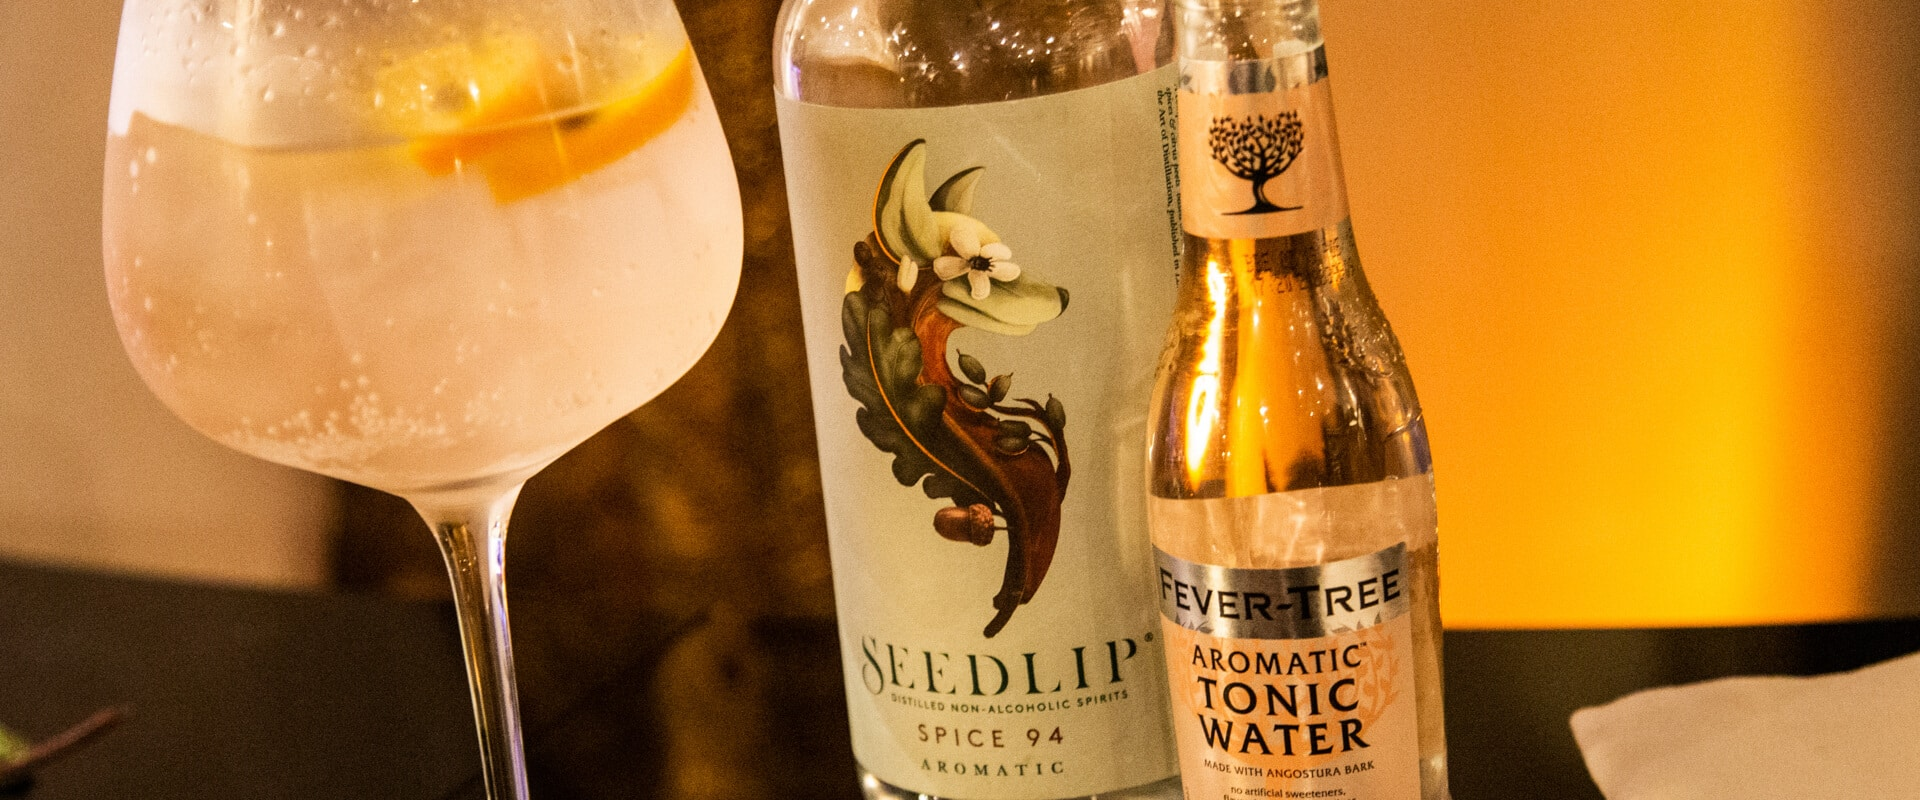 Seedlip Drink